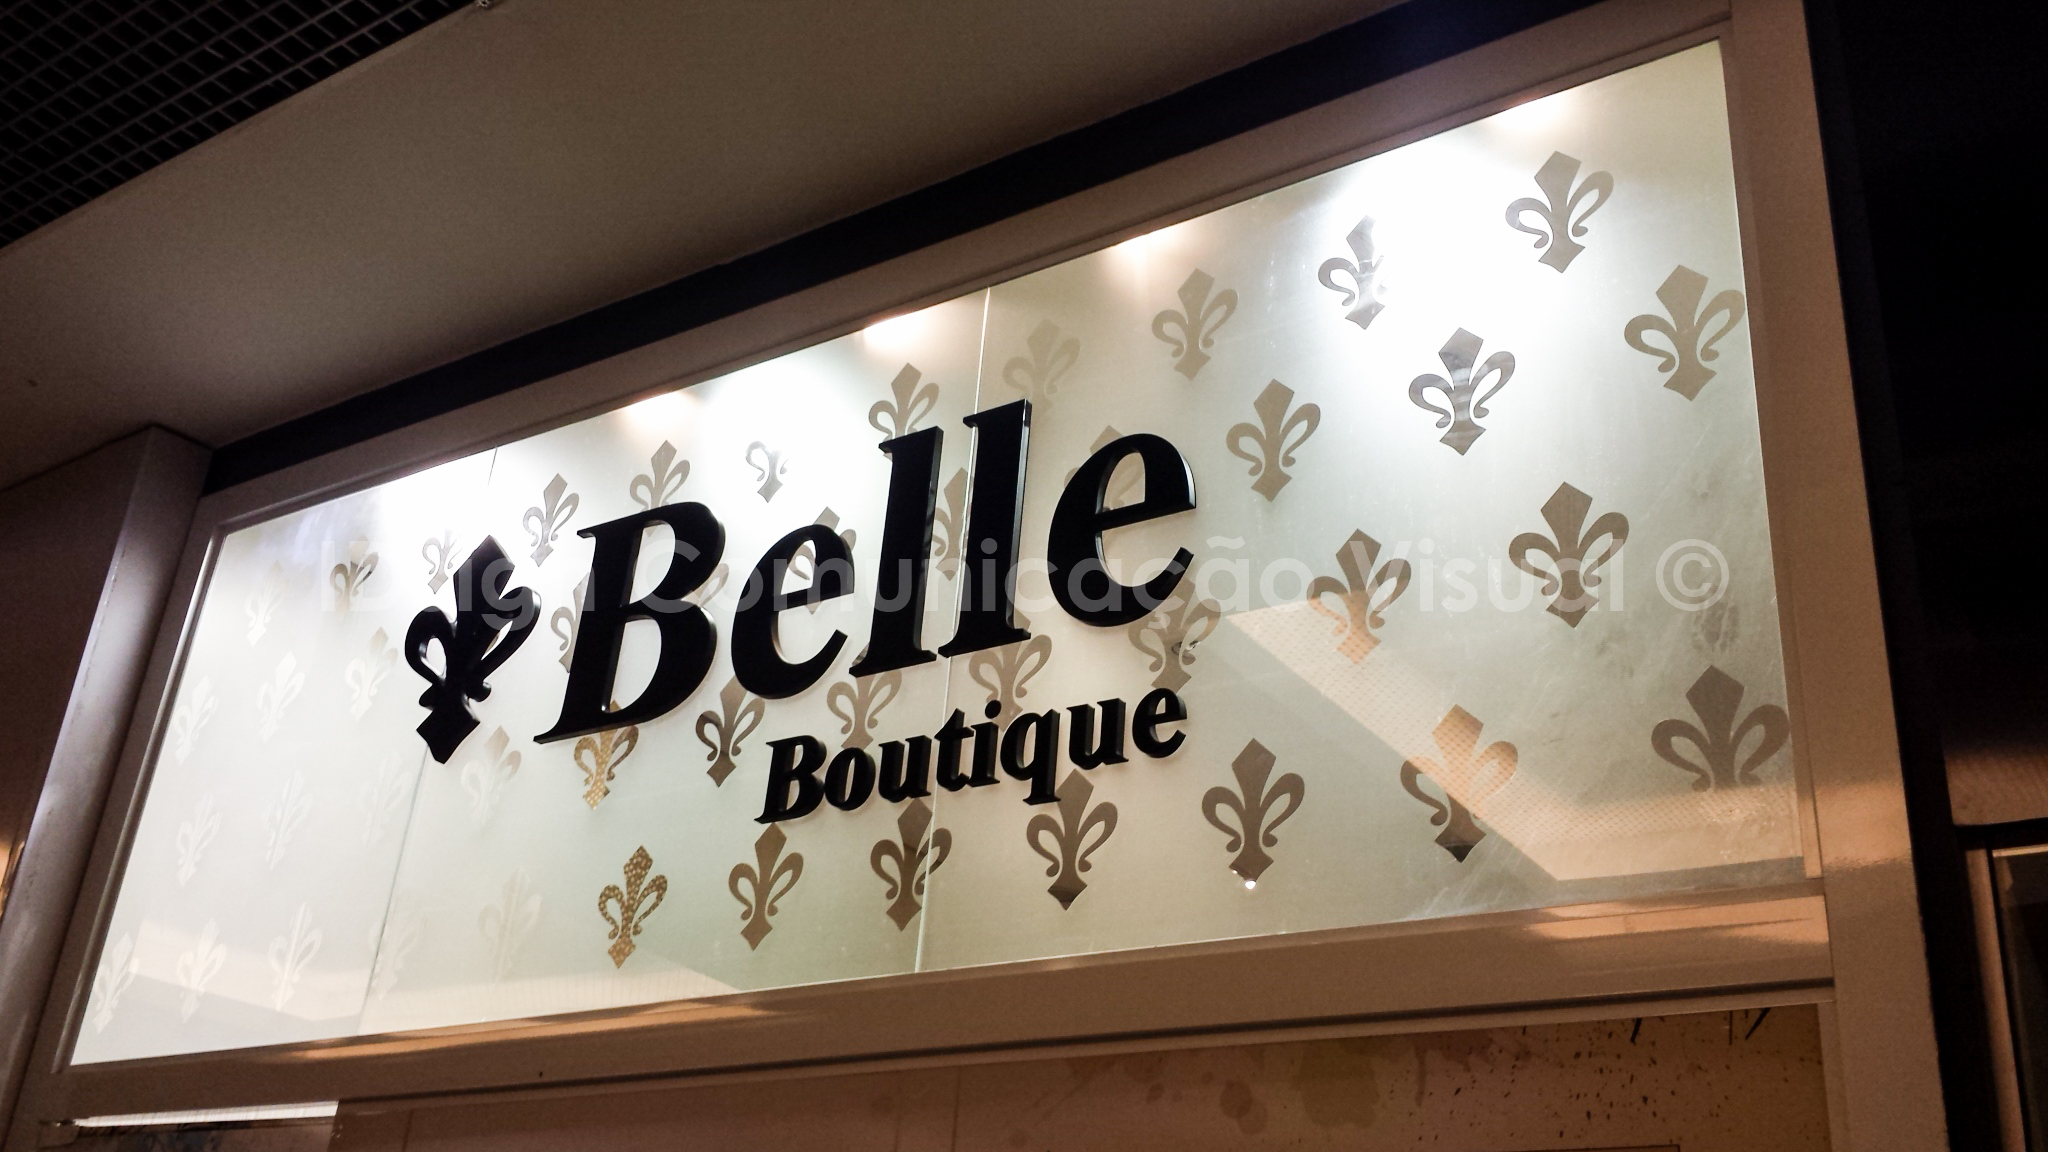 Idsign-Belle-Boutique-Letra-Caixa